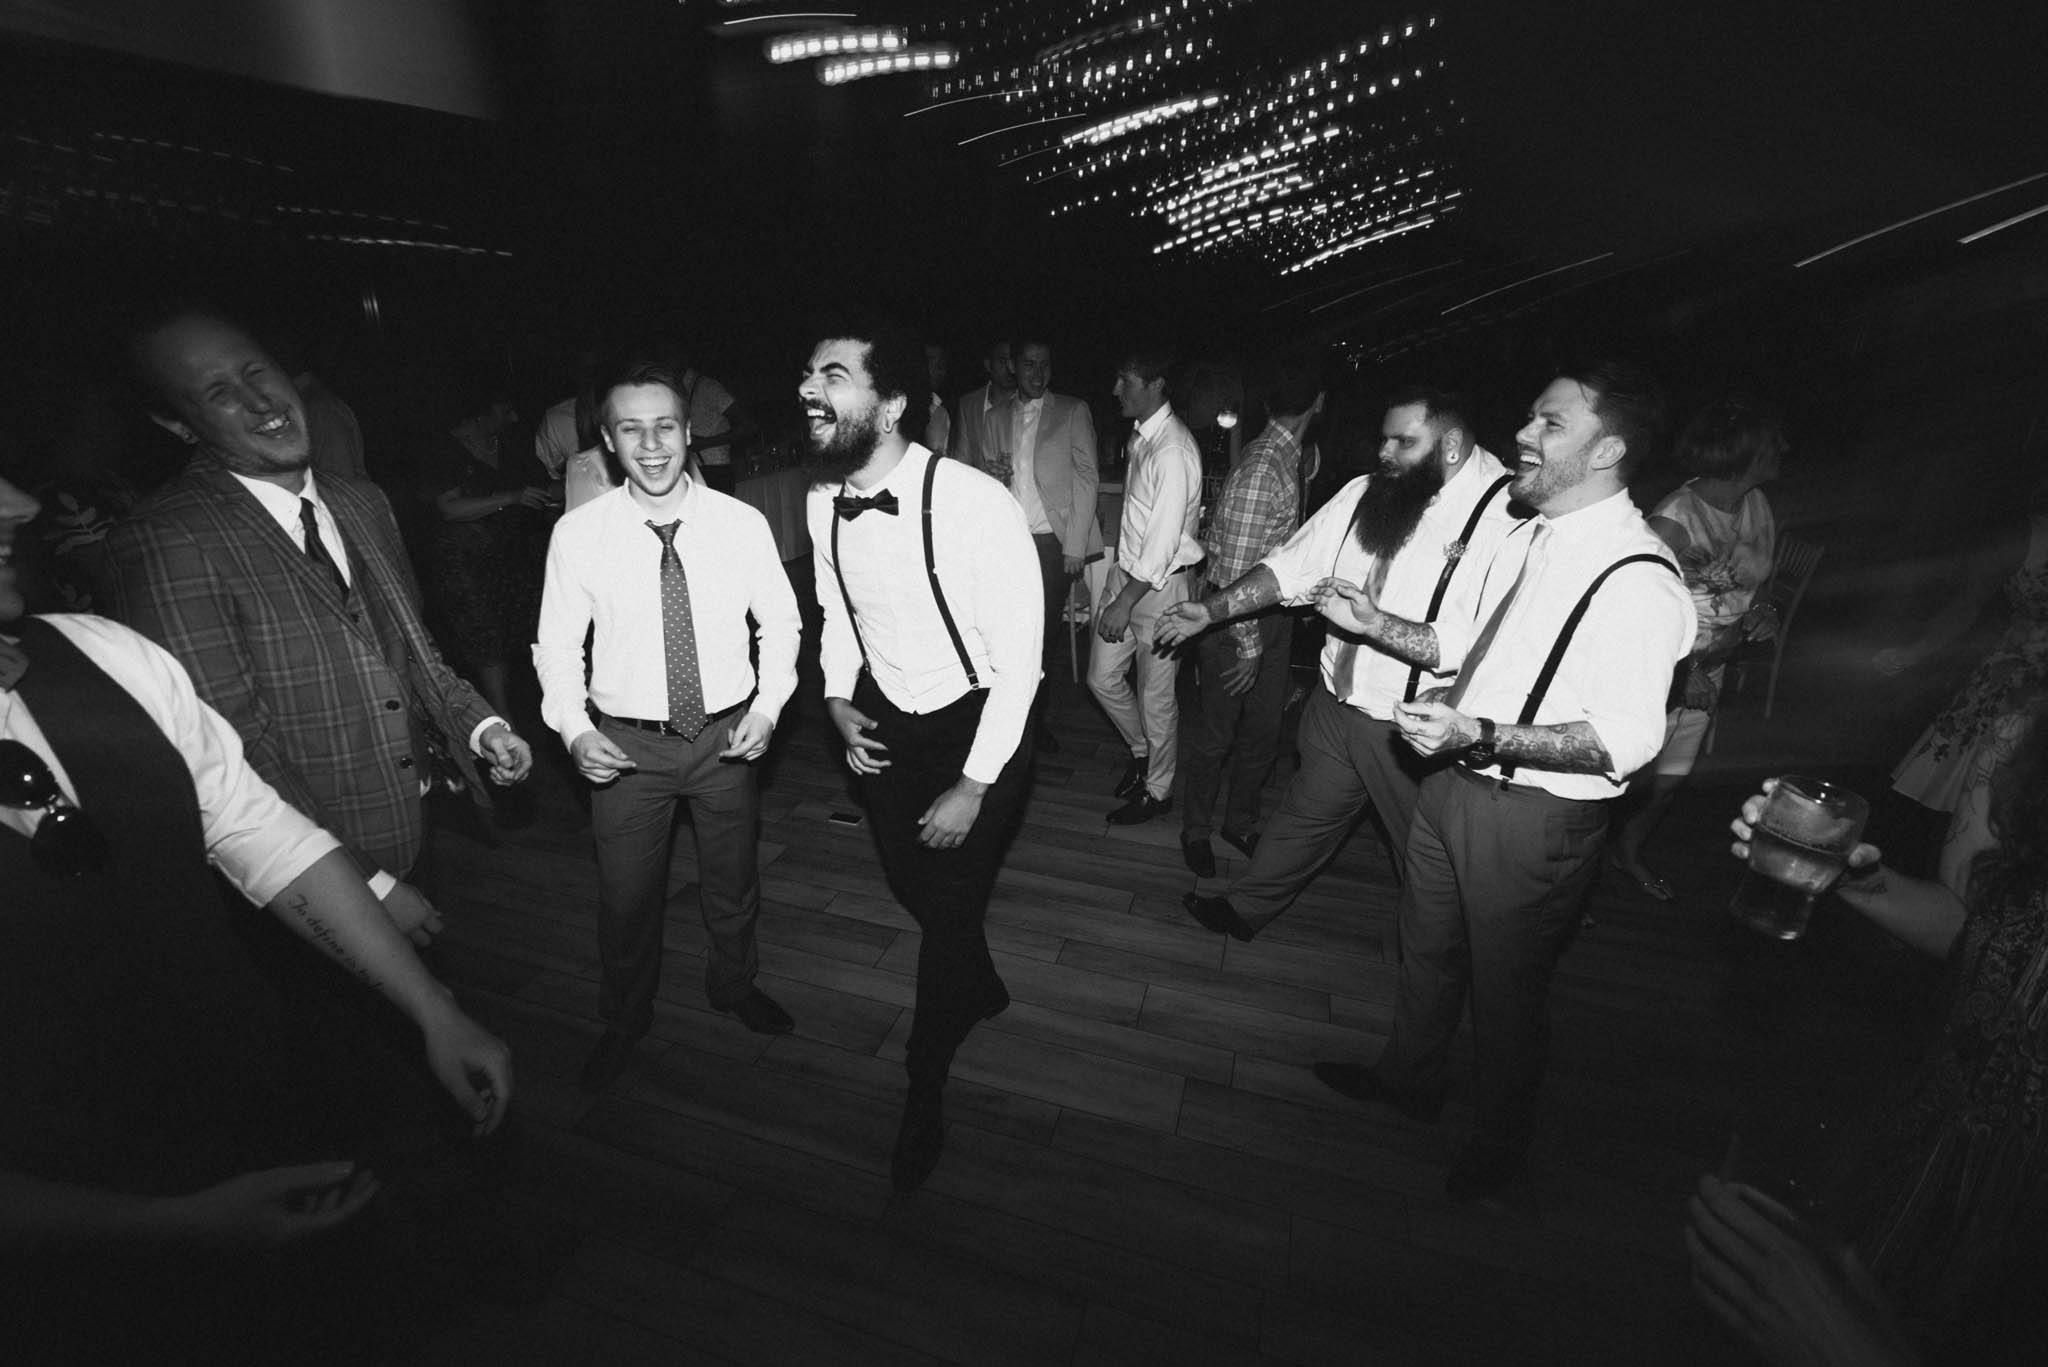 dancing2-wedding-blog-scott-stockwell-photography-end-2017.jpg